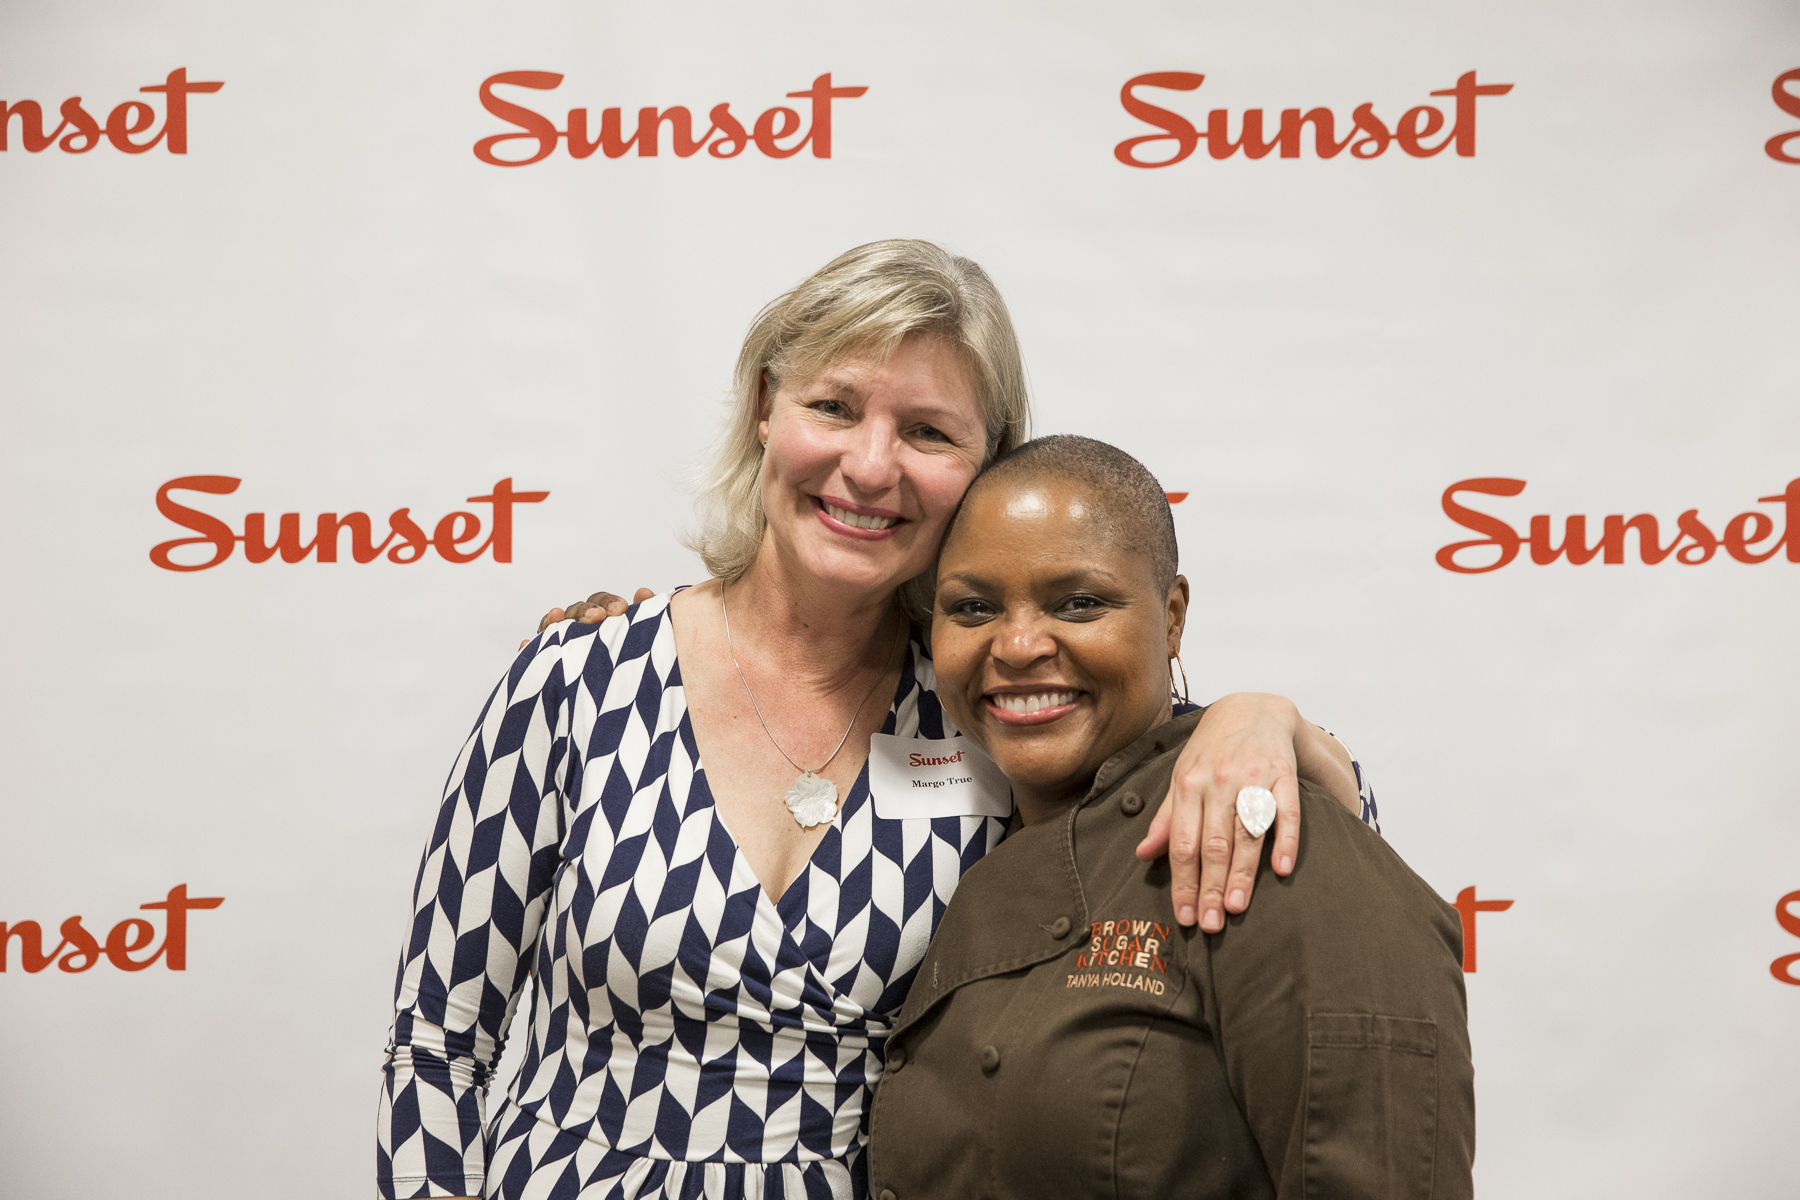 Sunset Food Editor Margo True, Chef Tanya Holland